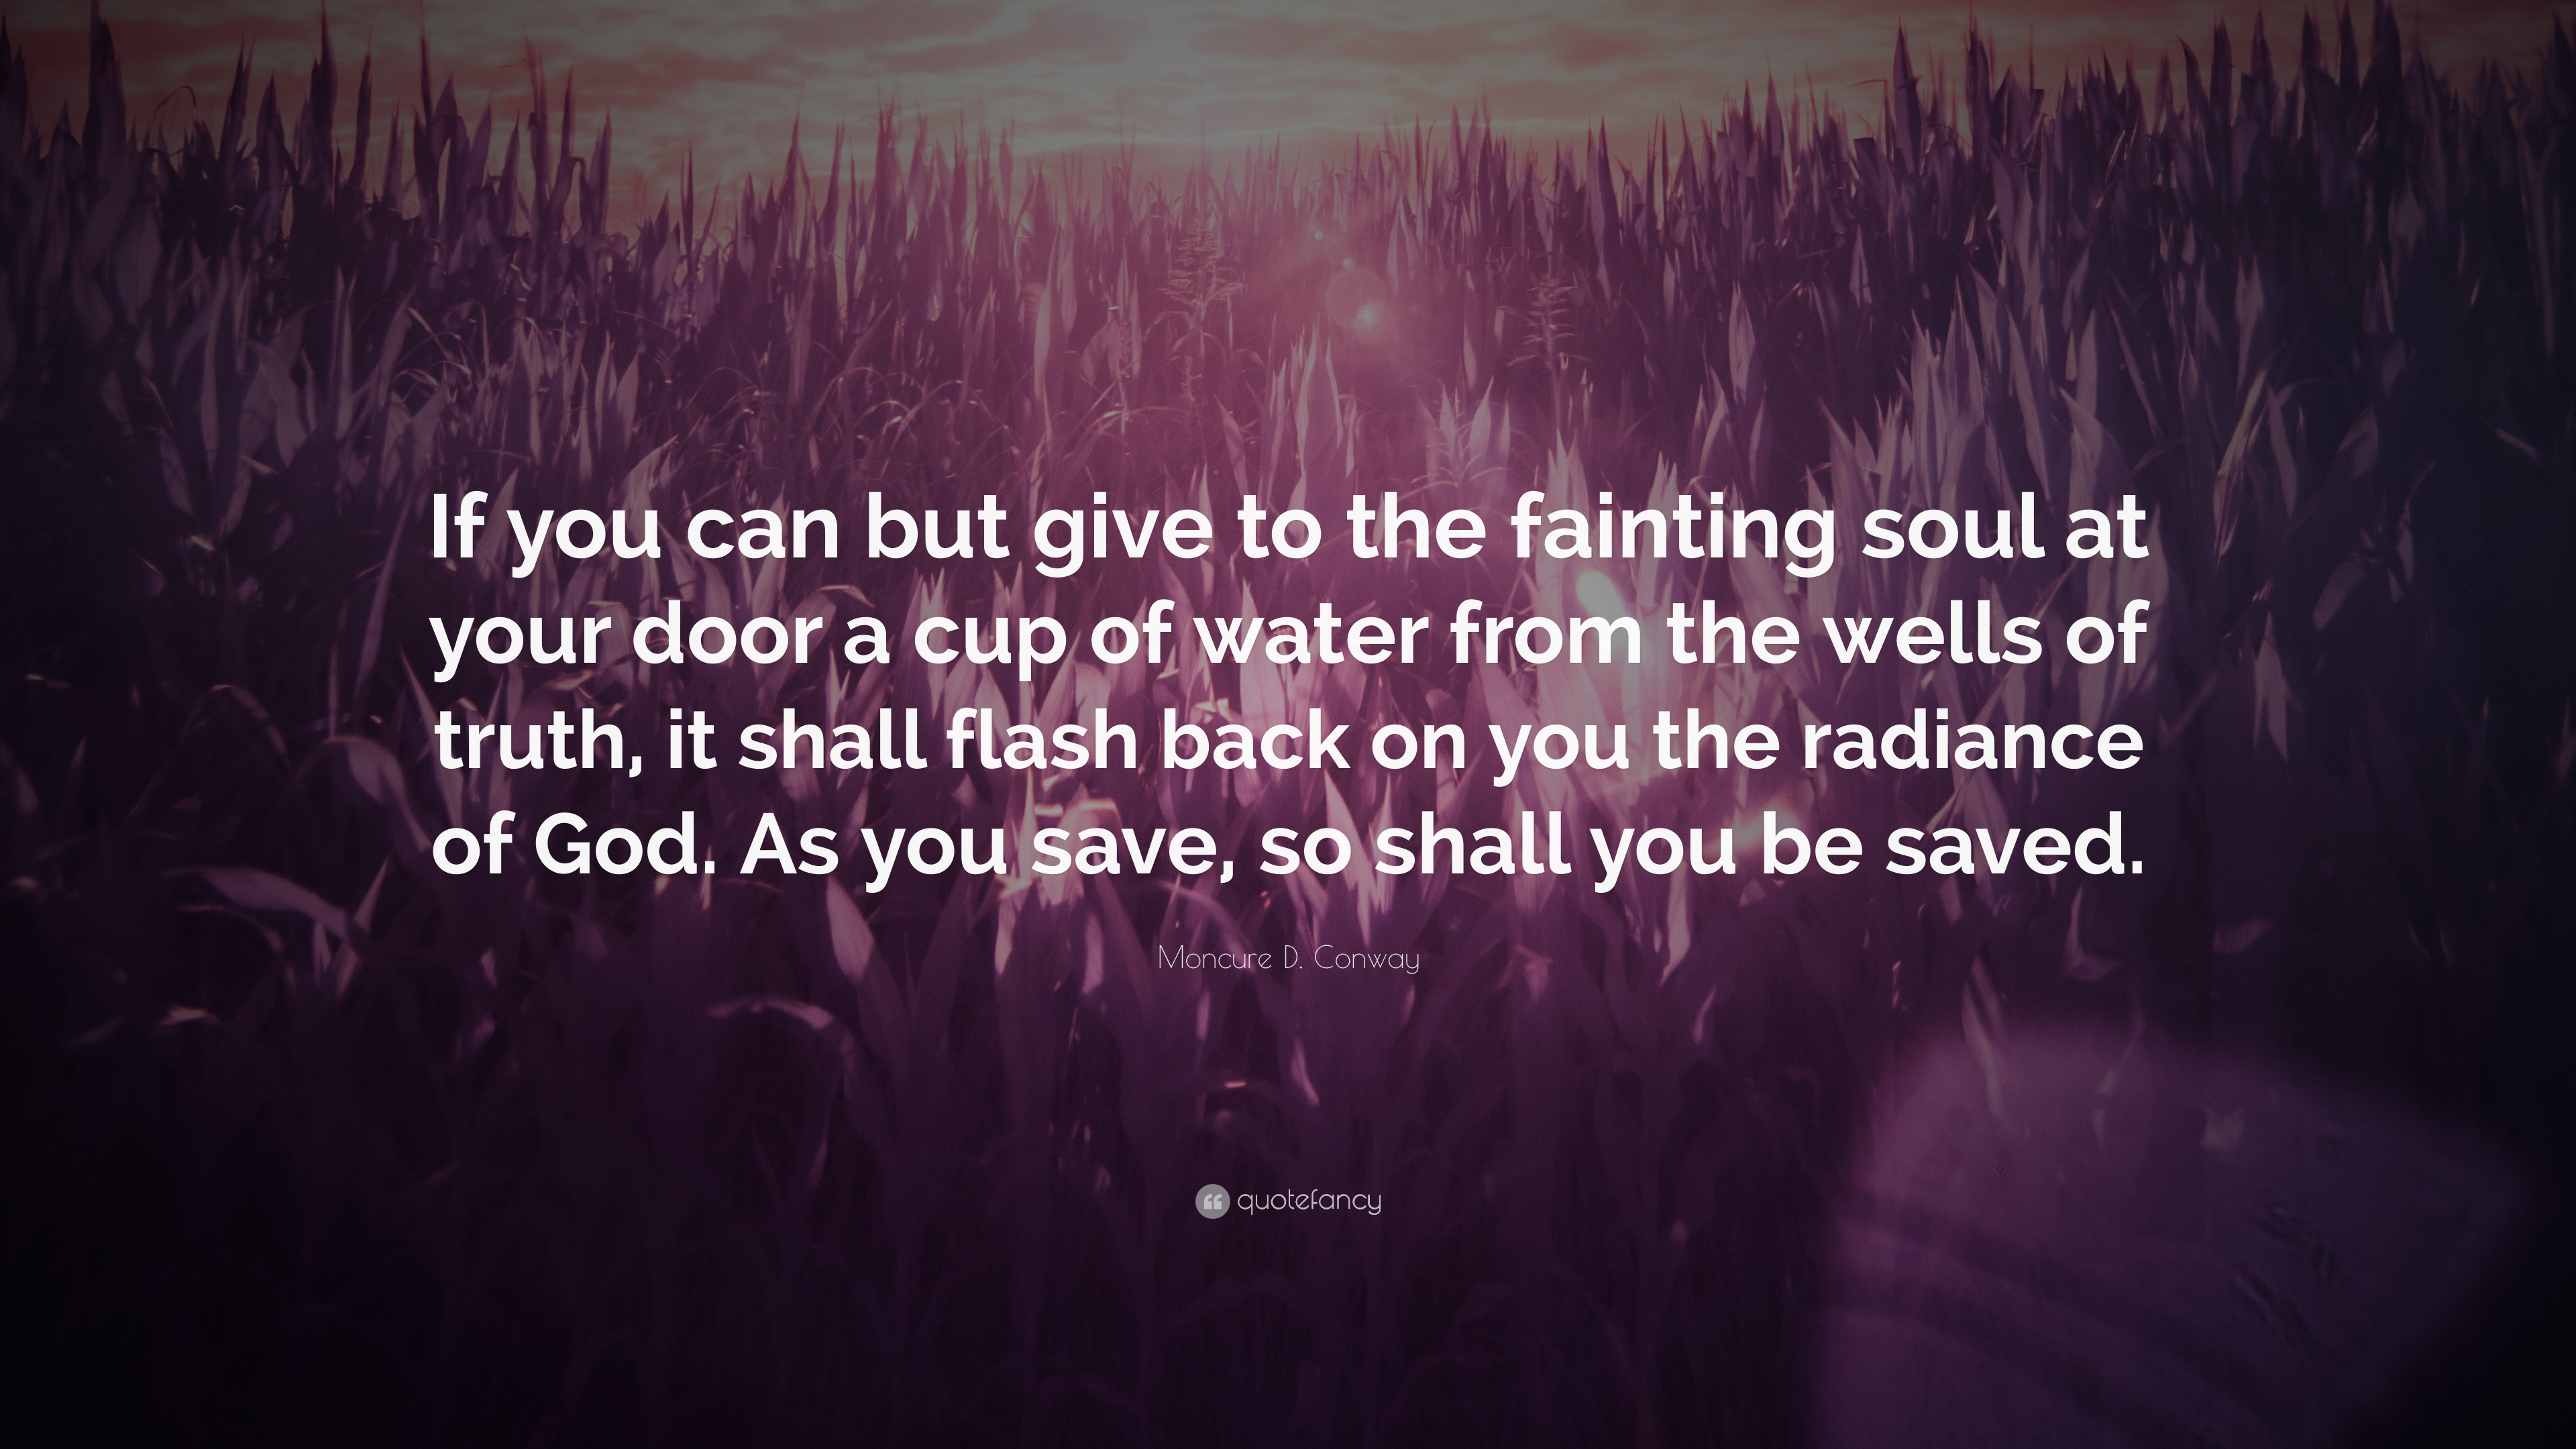 Exceptional Moncure D. Conway Quote: U201cIf You Can But Give To The Fainting Soul